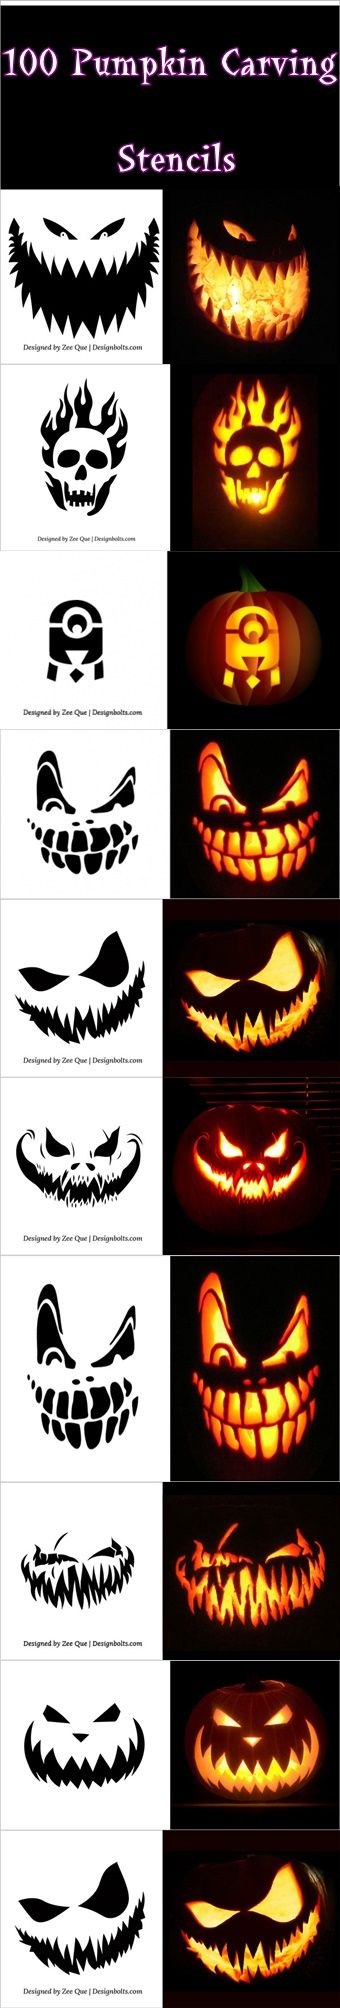 100 Pumpkin Carving Stencils, pumpkin carving stencils, pumpkin carving stencils templates